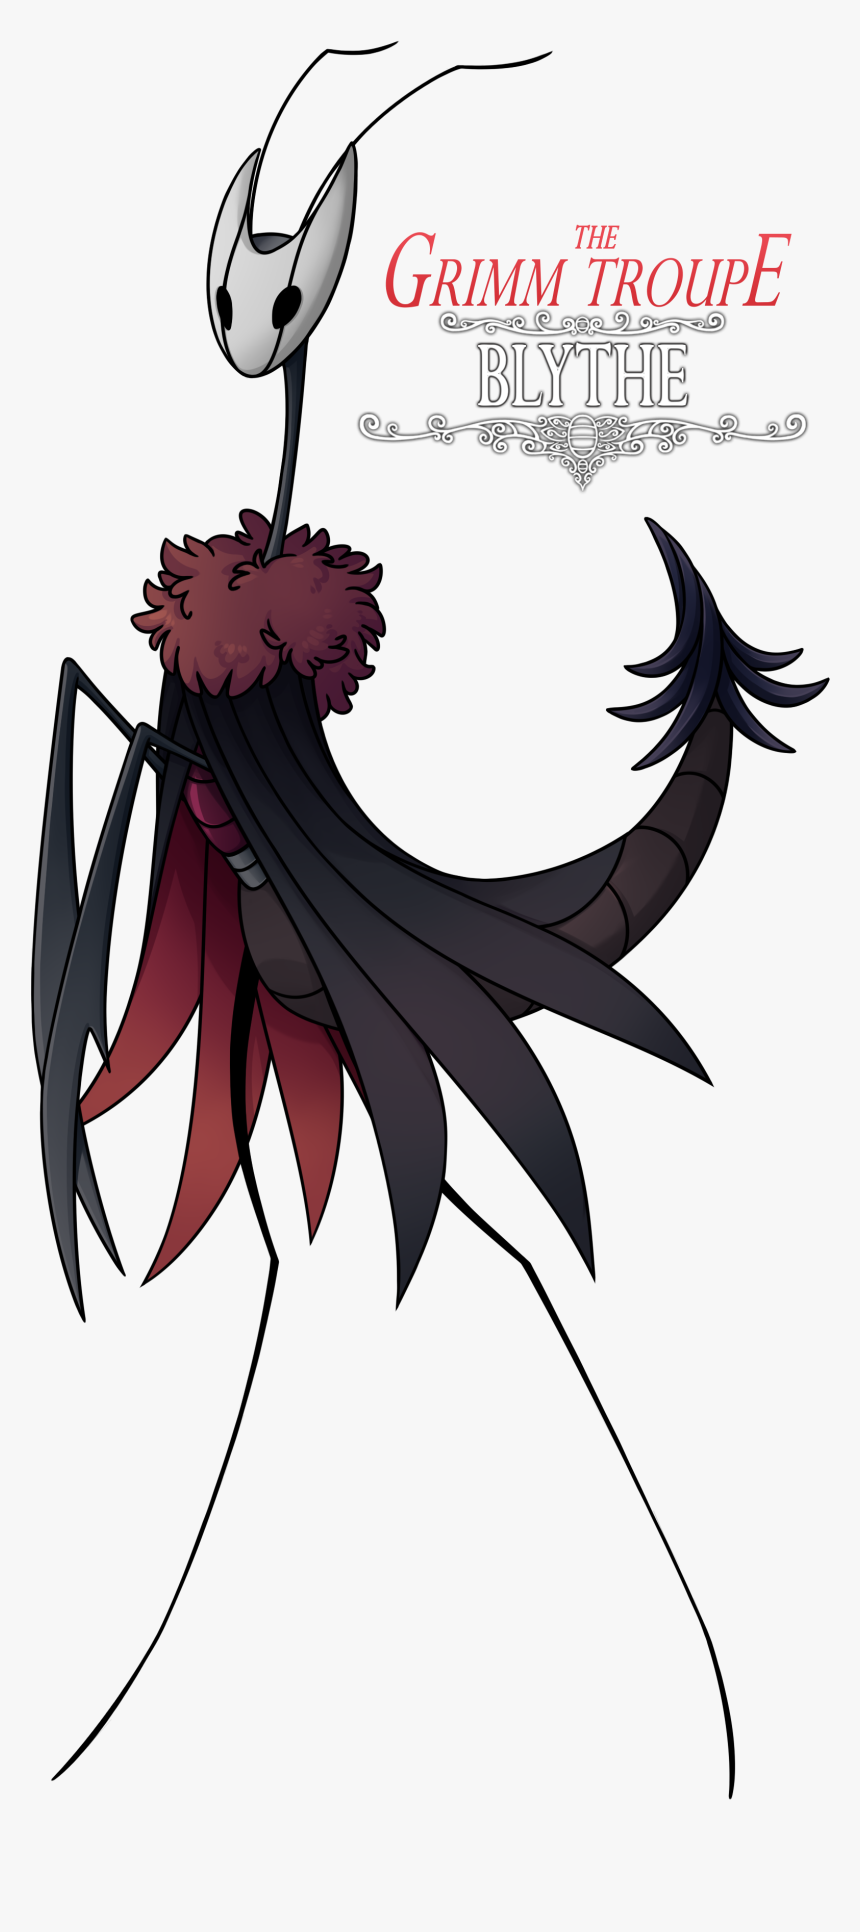 11367783 Mywnftltbqkavkp Hollow Knight Grimm Troupe Crowd Hd Png Download Transparent Png Image Pngitem He is the main character behind his quest. 11367783 mywnftltbqkavkp hollow